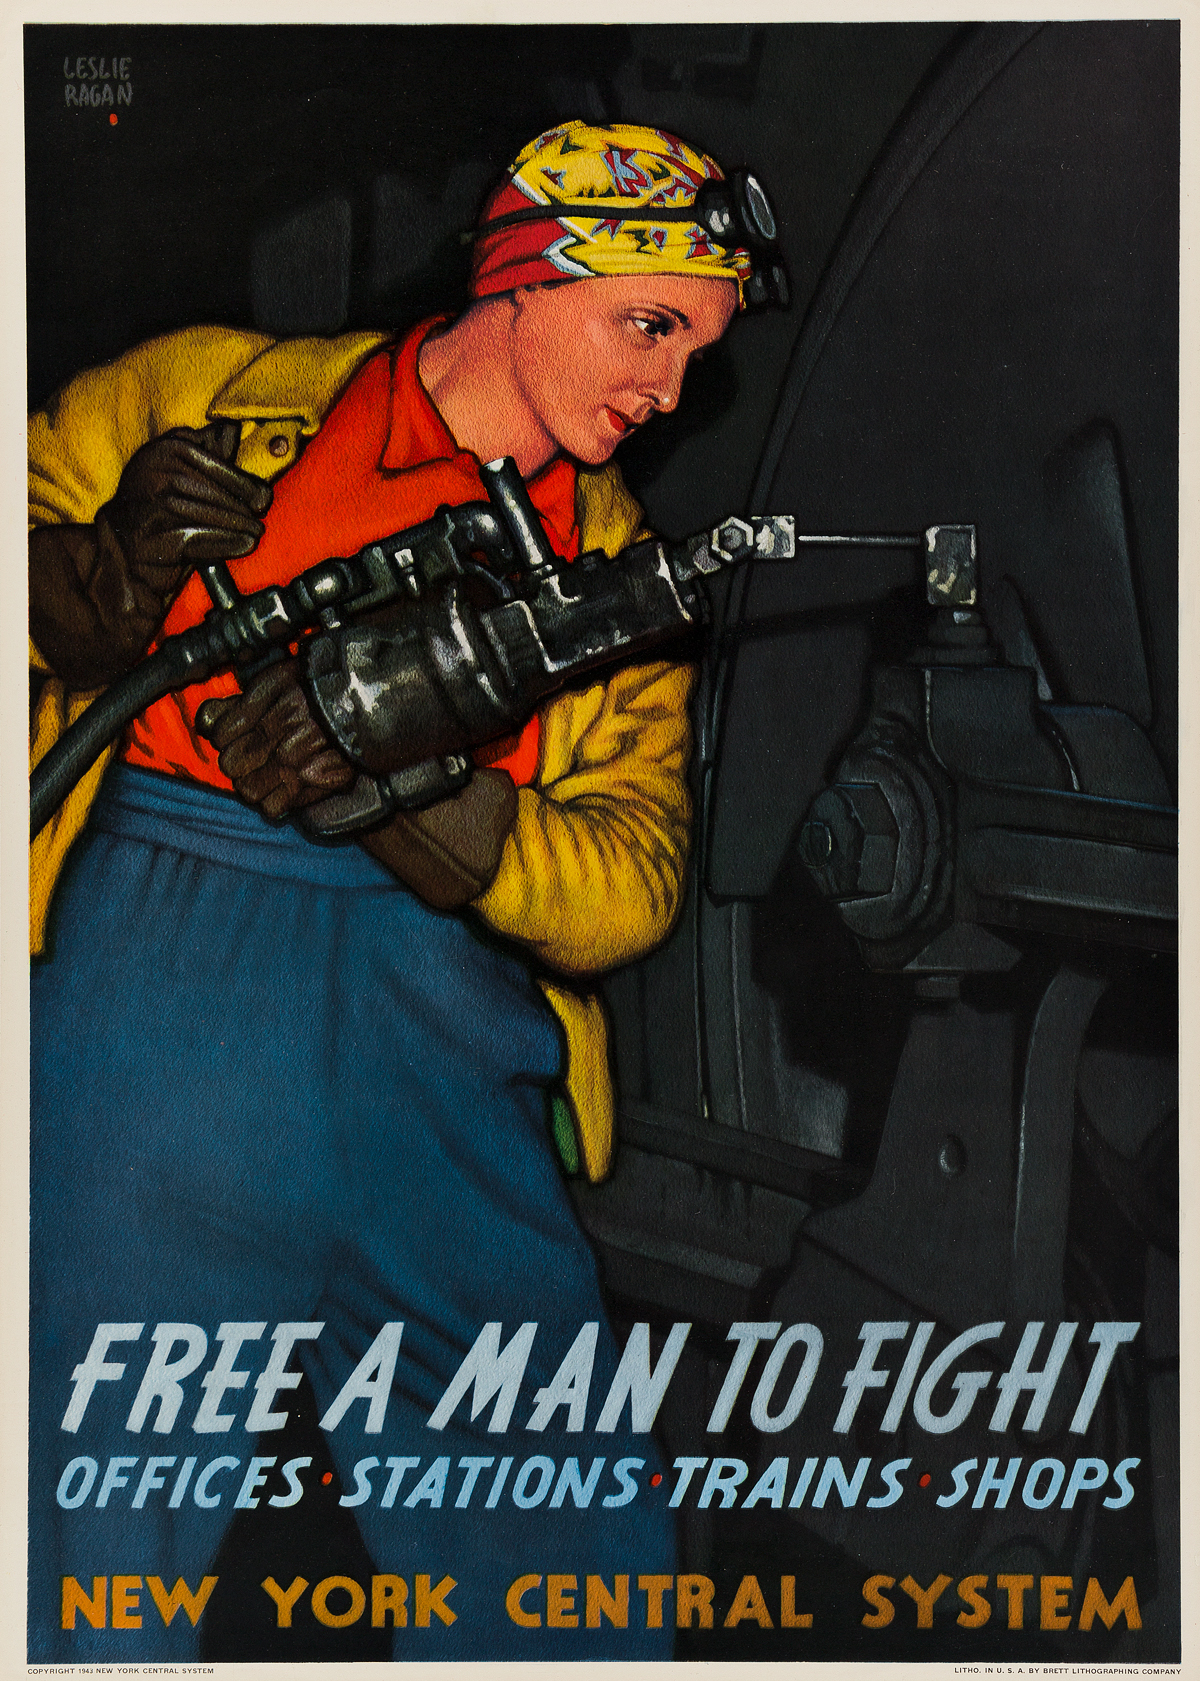 LESLIE RAGAN (1897-1972). FREE A MAN TO FIGHT / NEW YORK CENTRAL SYSTEM. 1943. 27x19 inches, 70x50 cm. Brett Lithographing Company, [Ne